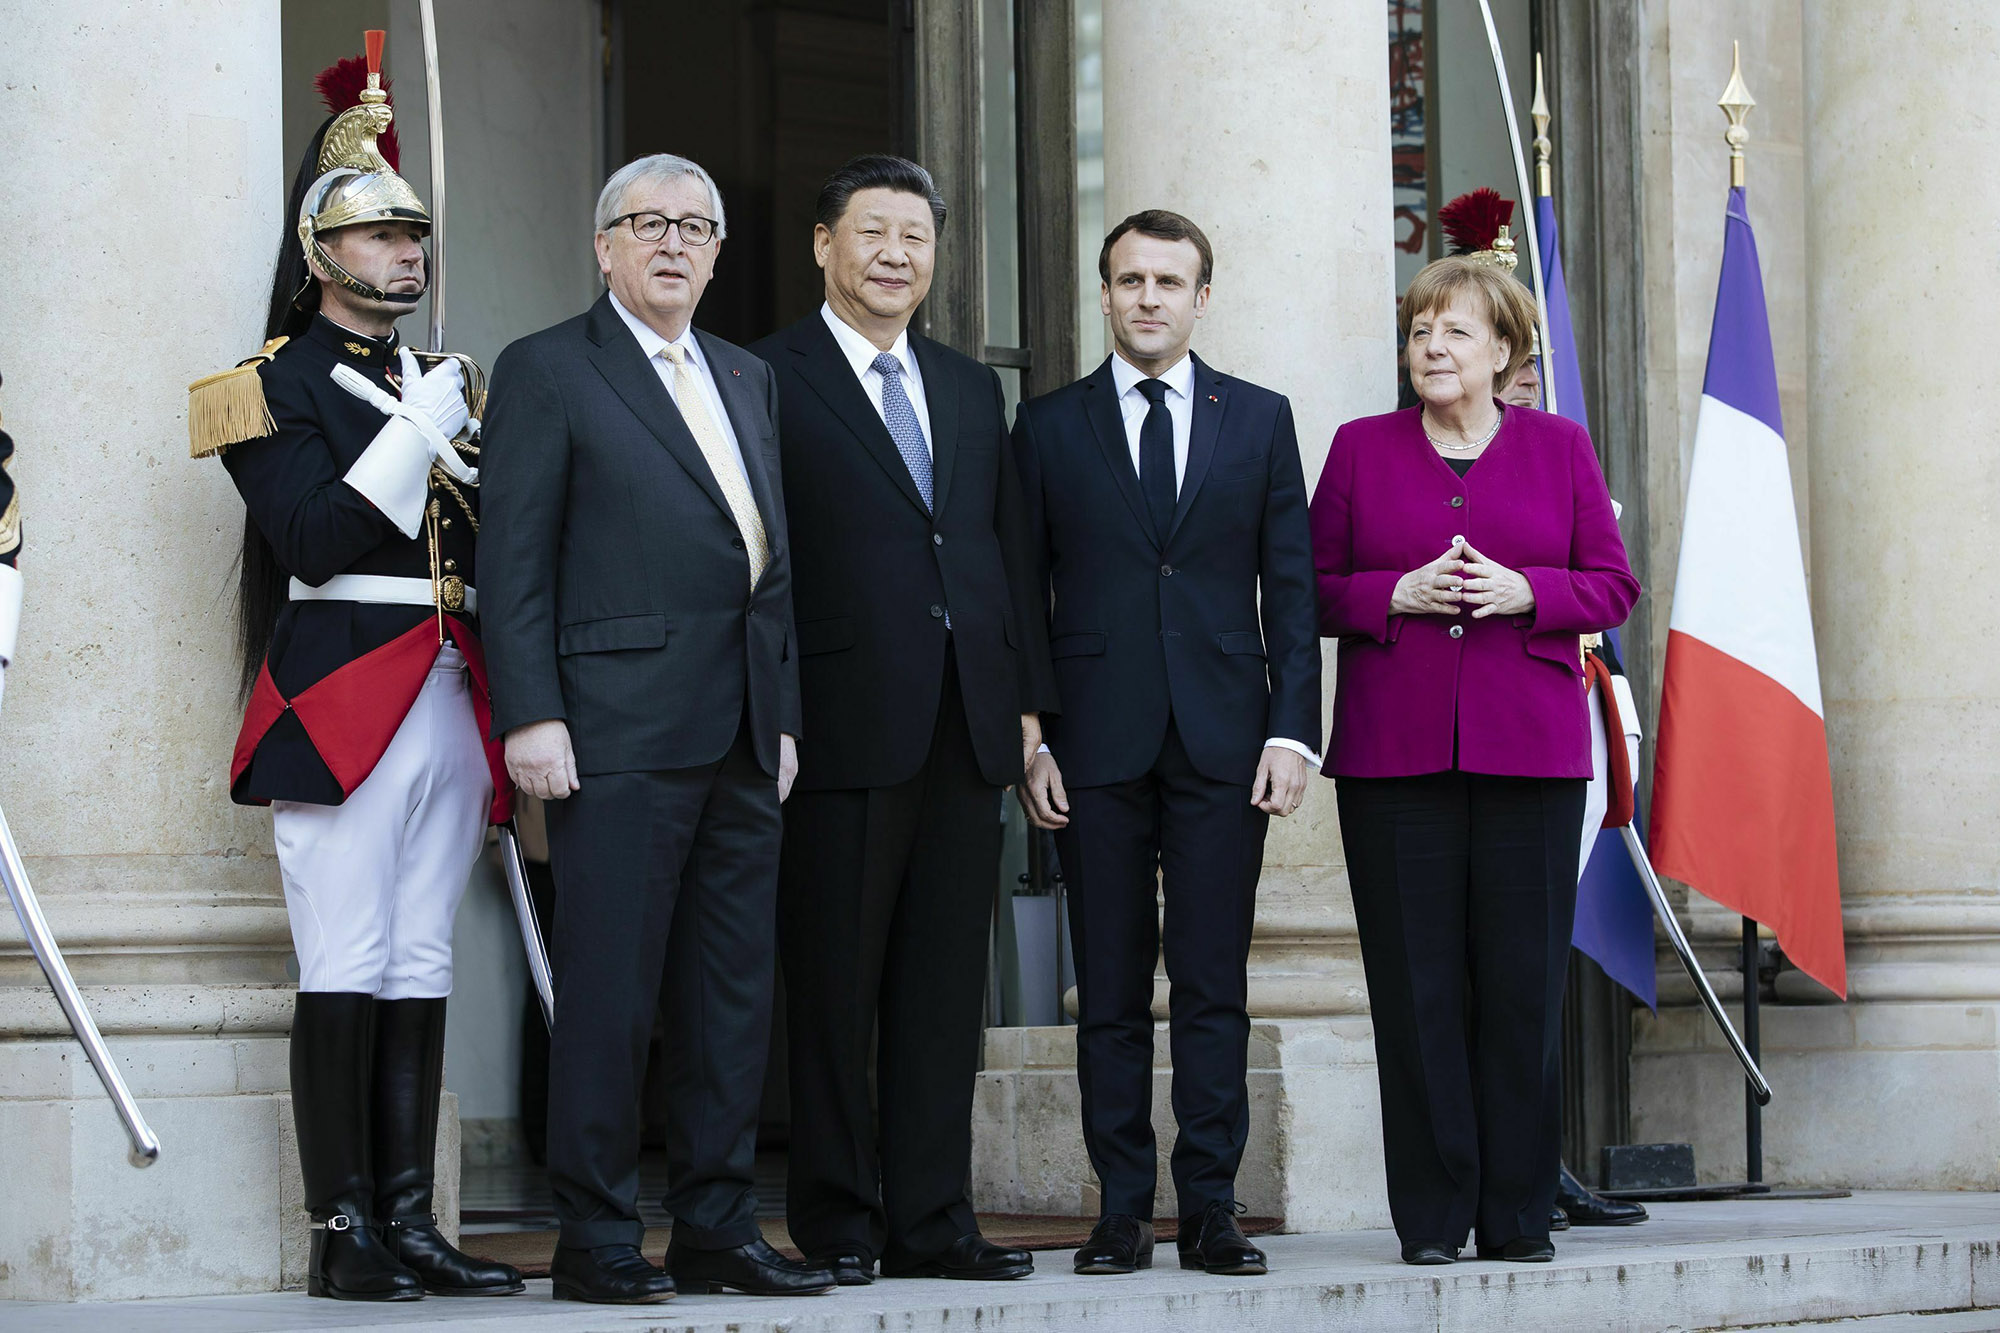 From left: European Union Commission President Jean-Claude Juncker, Chinese President Xi Jinping, French President Emmanuel Macron and German Chancellor Angela Merkel are pictured during a meeting at the Elysee Palace in Paris, France, in March 2019.